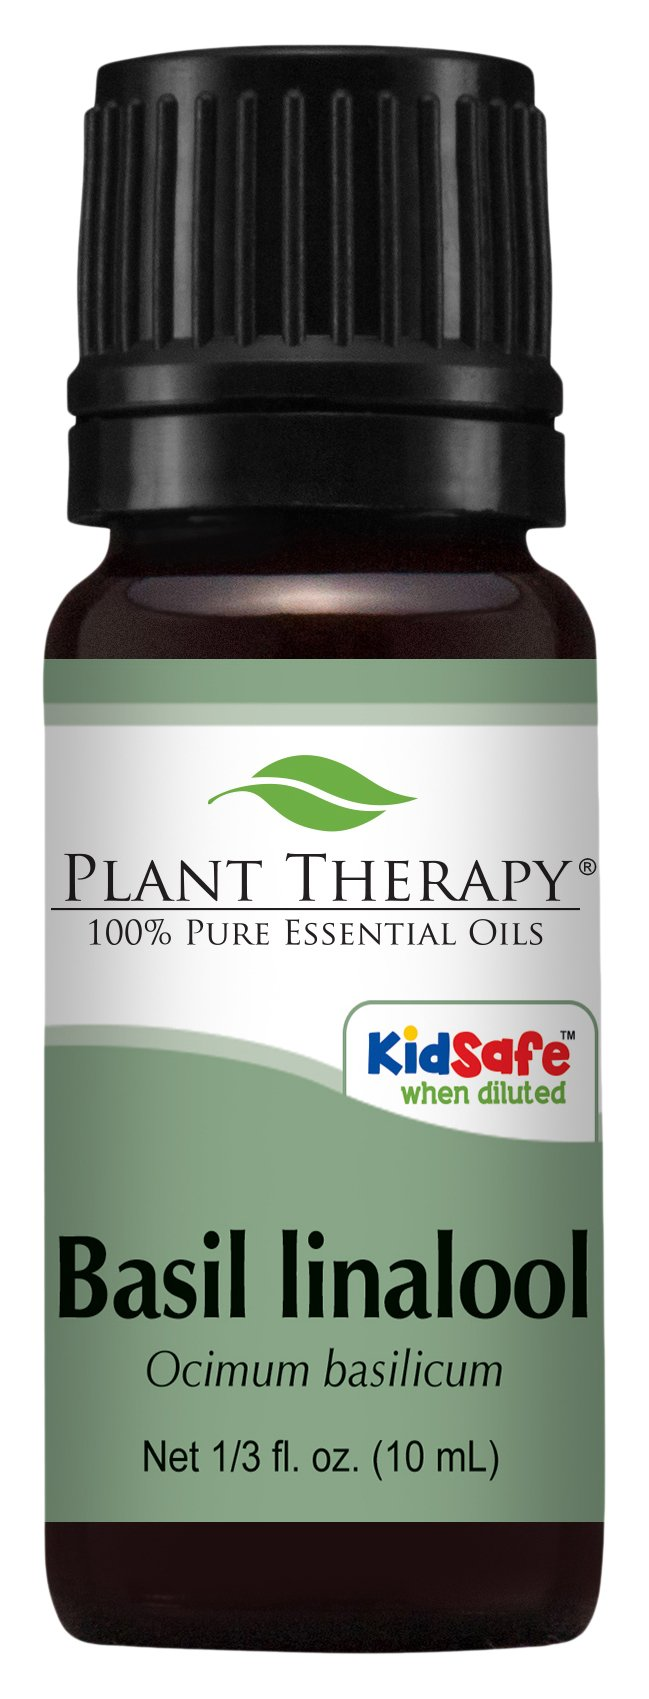 Plant Therapy Basil (linalool CT) Essential Oil. 100% Pure, Undiluted, Therapeutic Grade. 10 ml (1/3 oz).